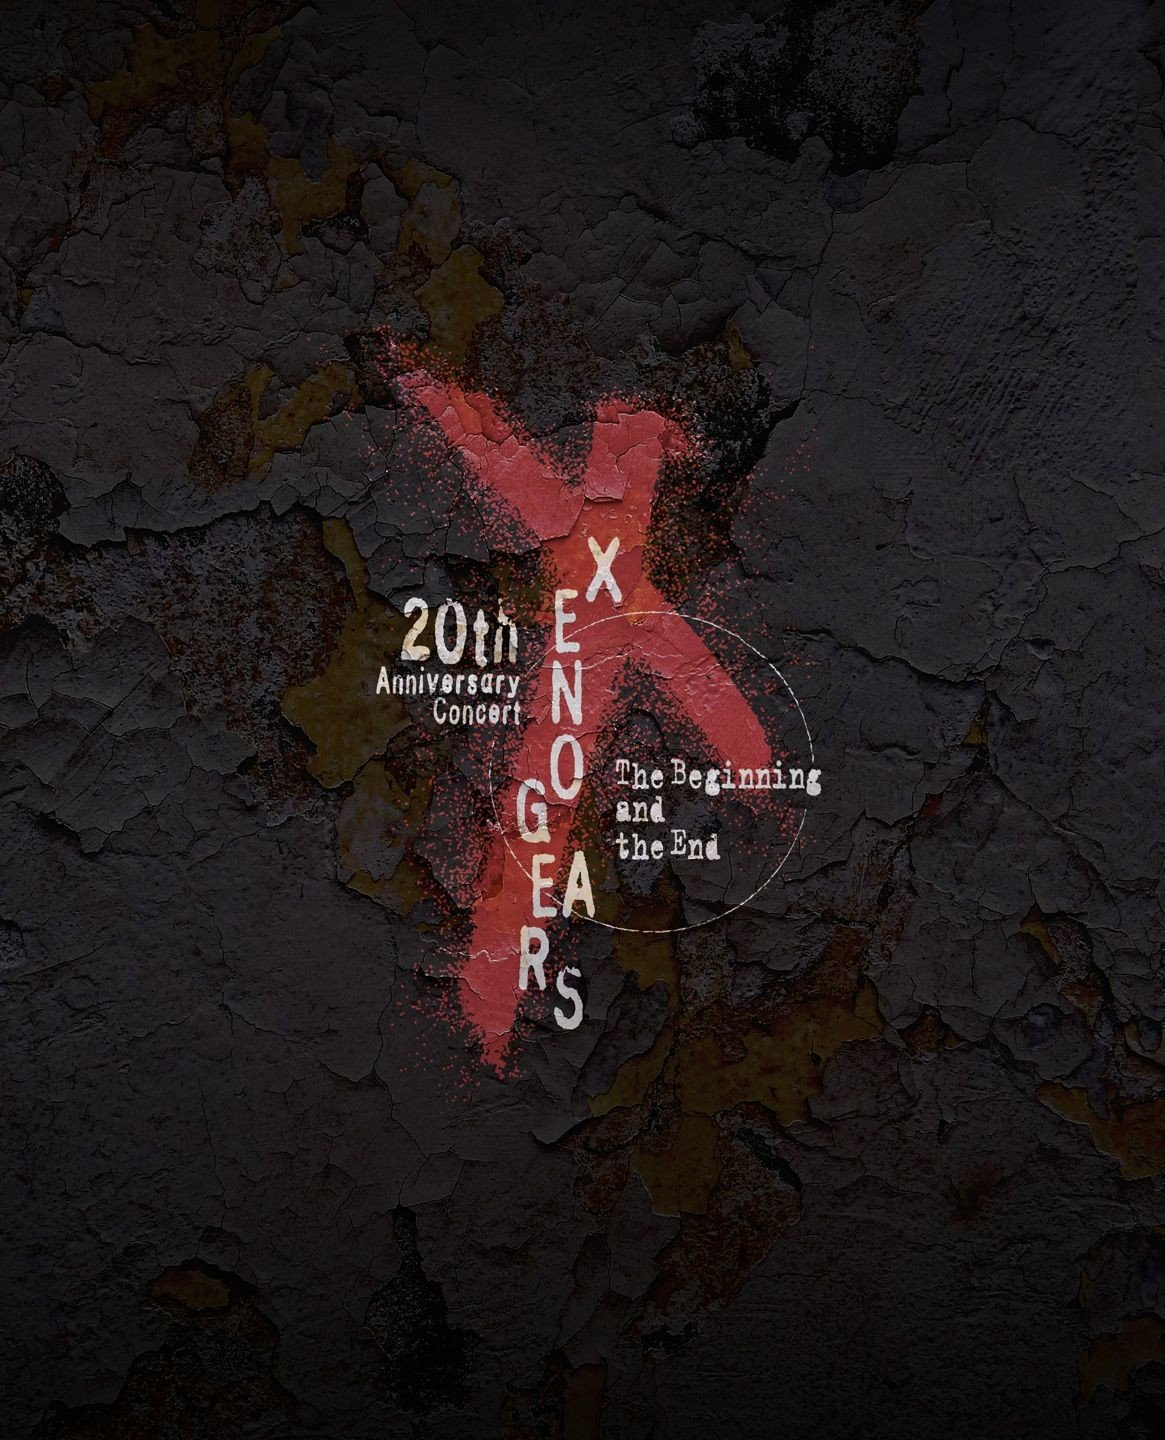 光田康典 (Yasunori Mitsuda) – Xenogears 20th Anniversary Concert -The Beginning and the End- (2019) [Blu-ray to FLAC 24bit/96kHz]